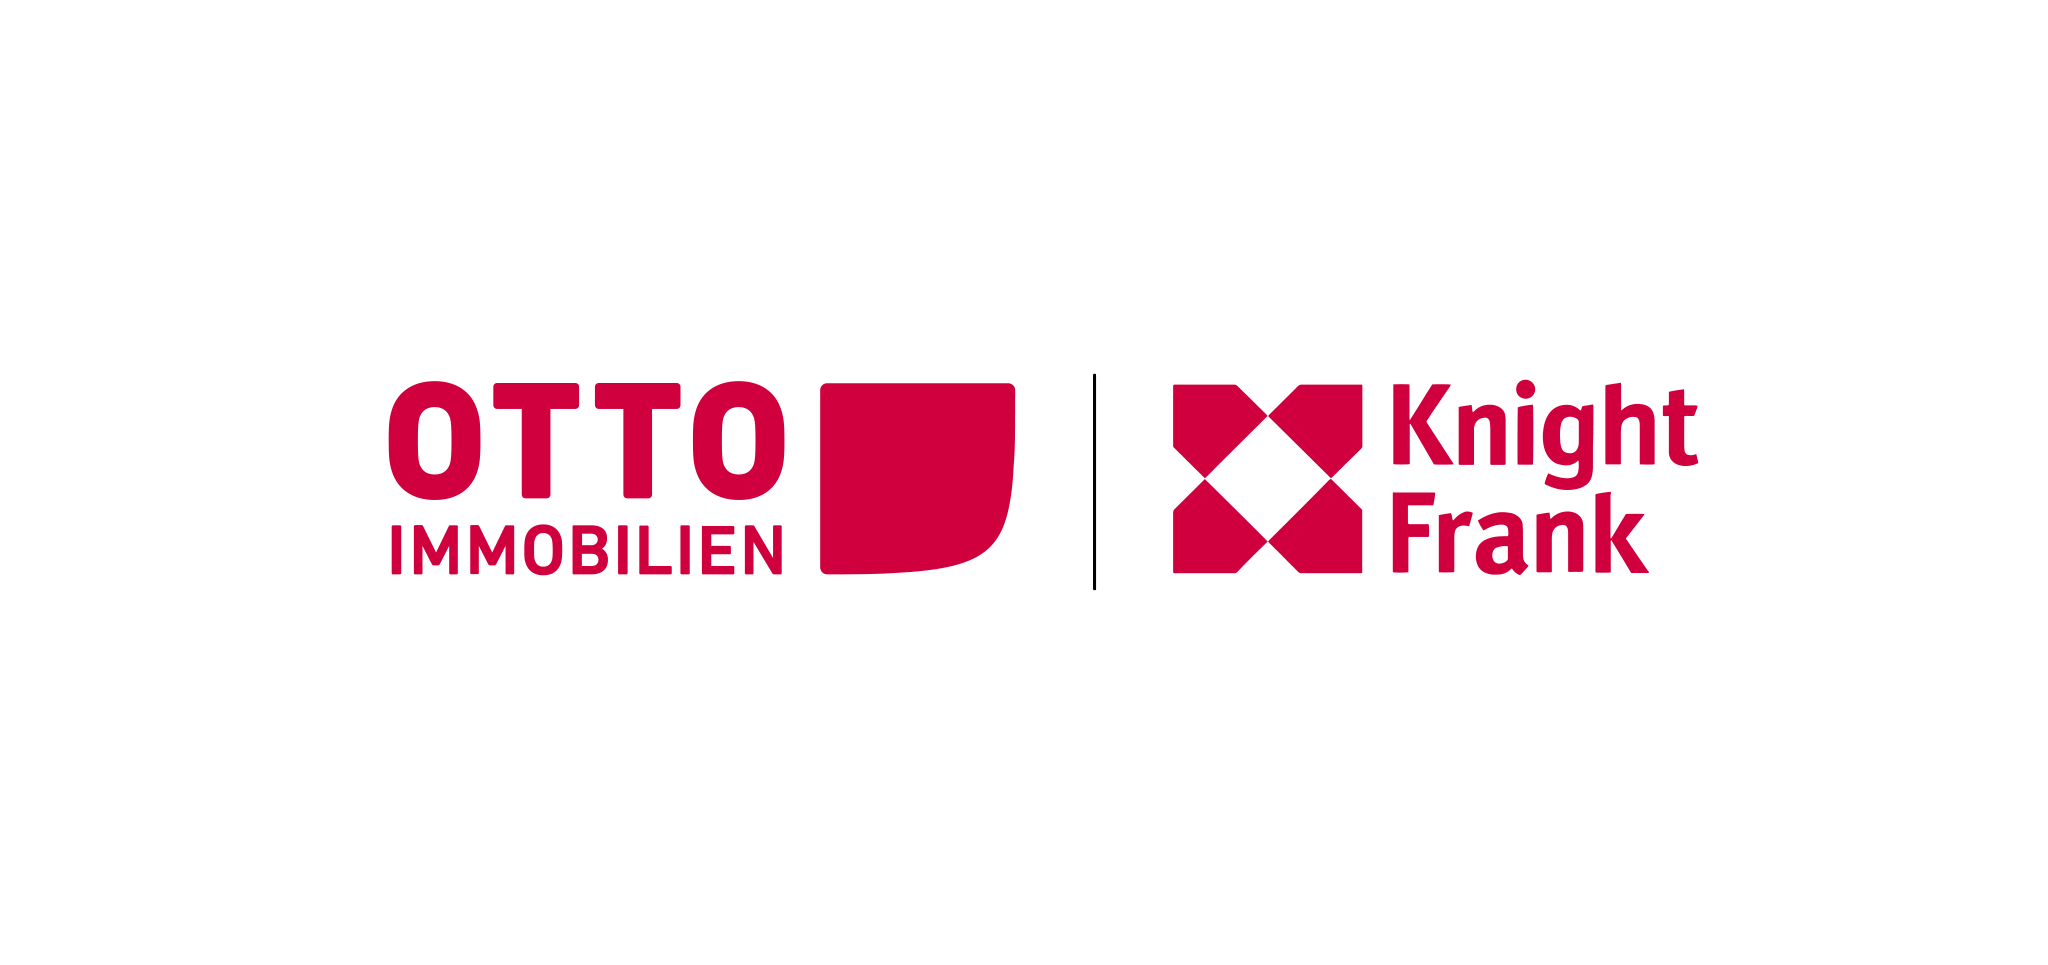 Otto Immobilien Logo mit Knight Frank